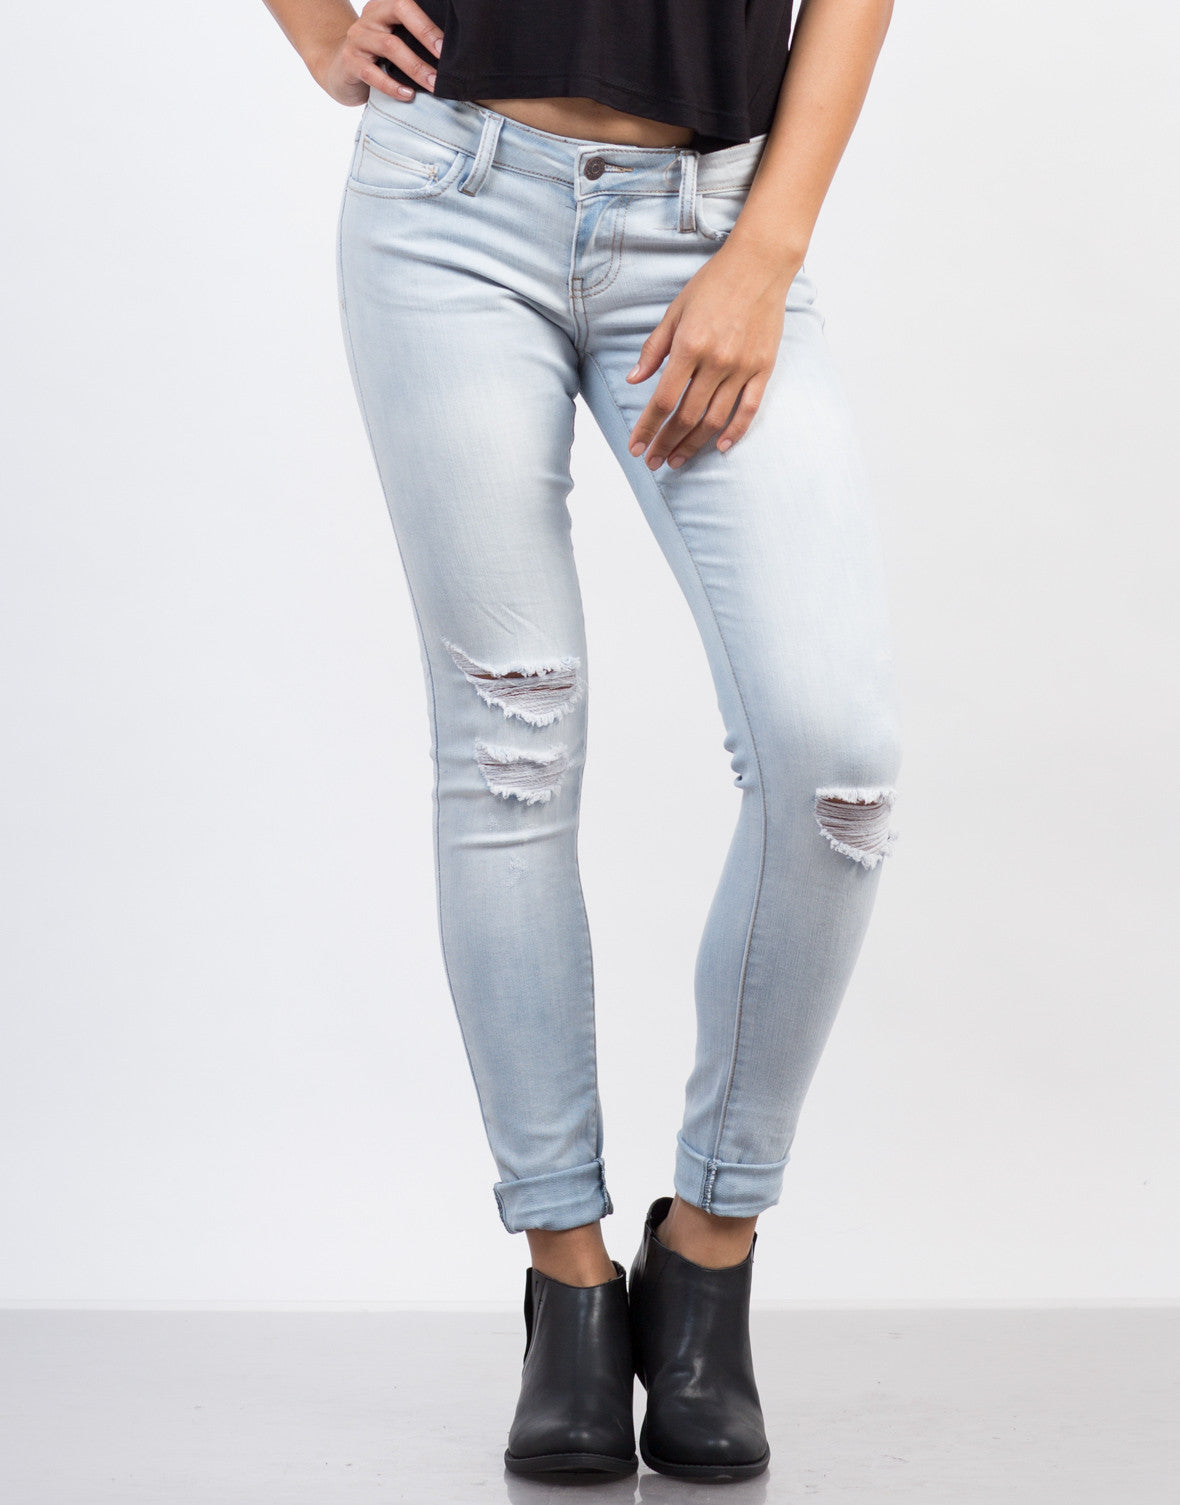 Front View of Light Wash Ripped Jeans